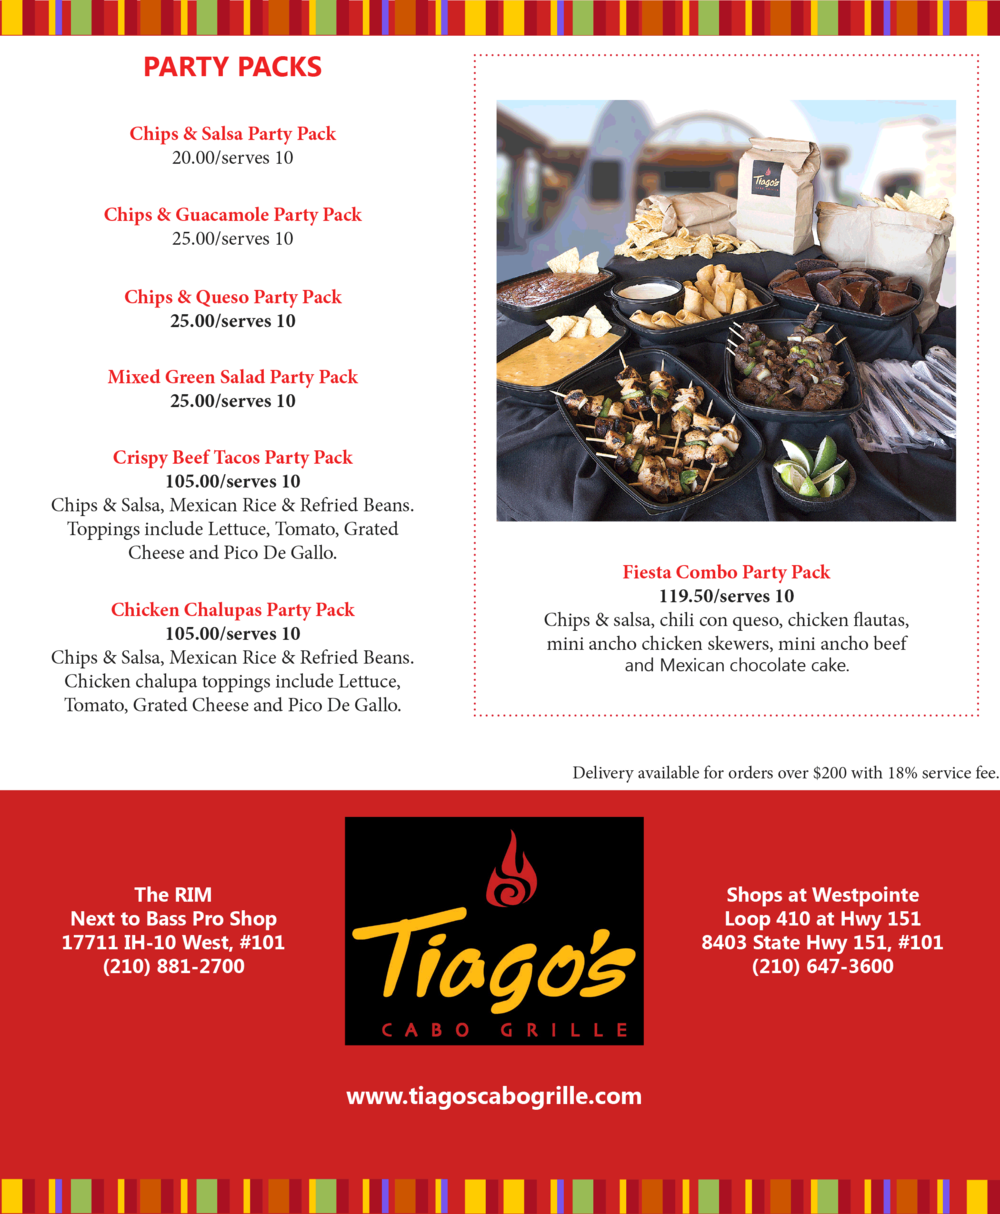 Tiago's Catering Party Packs